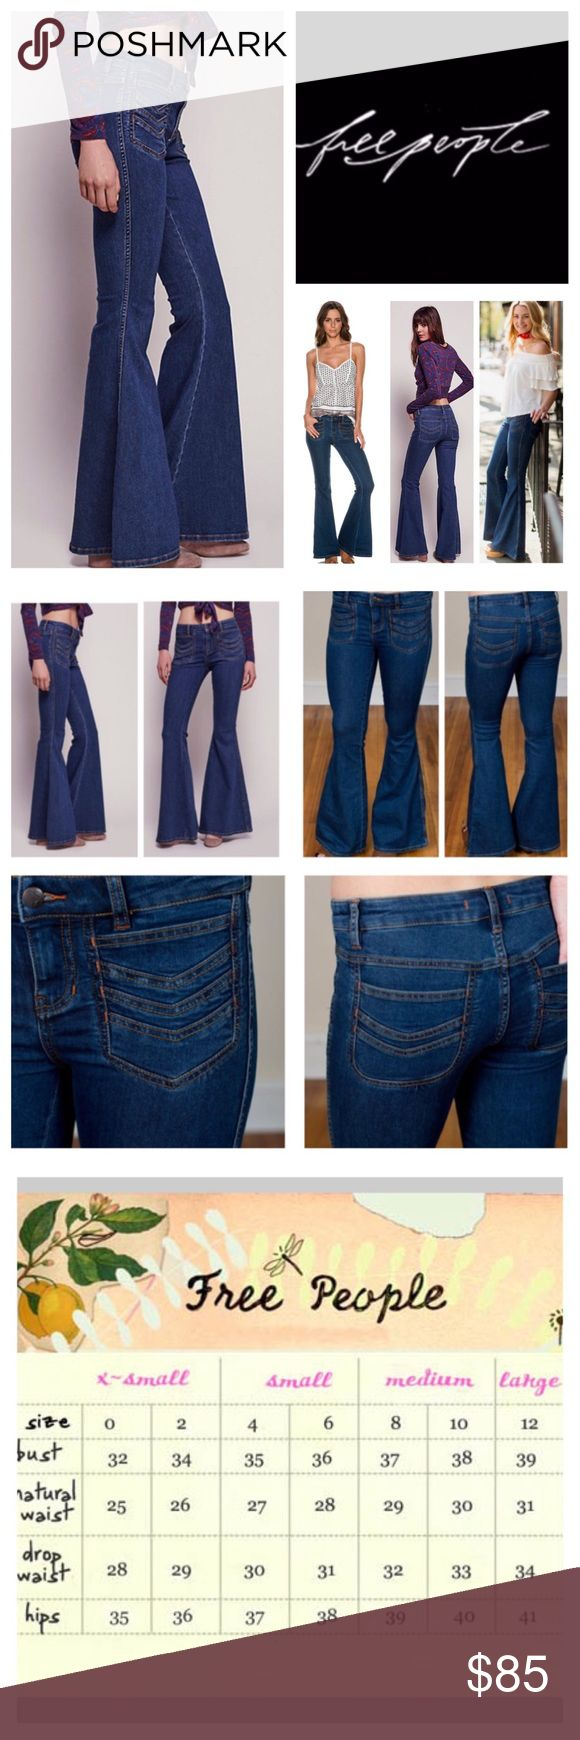 """Free People Stella Stretchy Flared Jeans.  NWT. Free People Stella High Rise Stretchy Flared Jeans, 50% cotton, 23% rayon, 22% polyester, 2% spandex, machine washable, 27"""" waist, 8"""" front rise, 13"""" back rise, 34"""" inseam, 27"""" leg opening all around, super stretch fabric, chevron-embroidered patch pockets further the hip throwback vibe of these stretch denim that sculpt your figure through the thighs before flaring into a dramatic bell shape, pockets trimmed in orange thread, zip fly button…"""